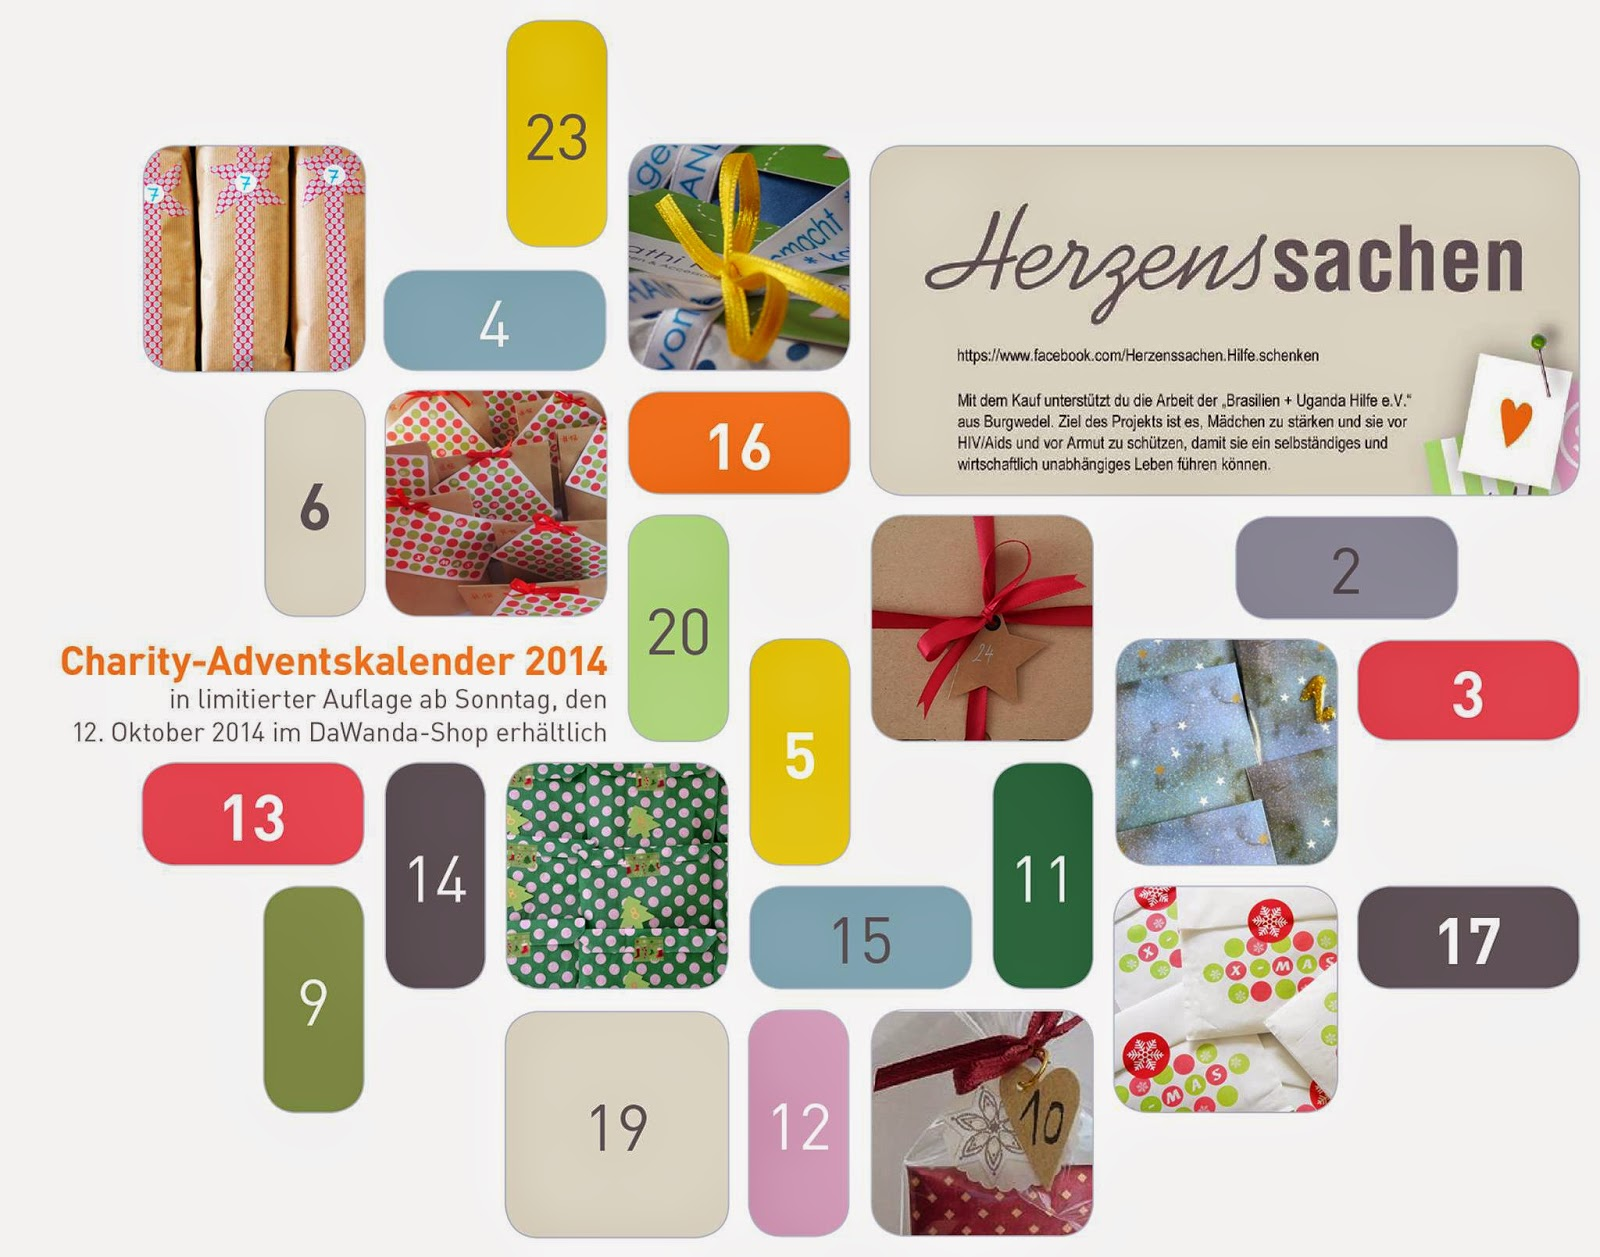 fabelhafte kleine geschenke f r adventskalender fotos. Black Bedroom Furniture Sets. Home Design Ideas